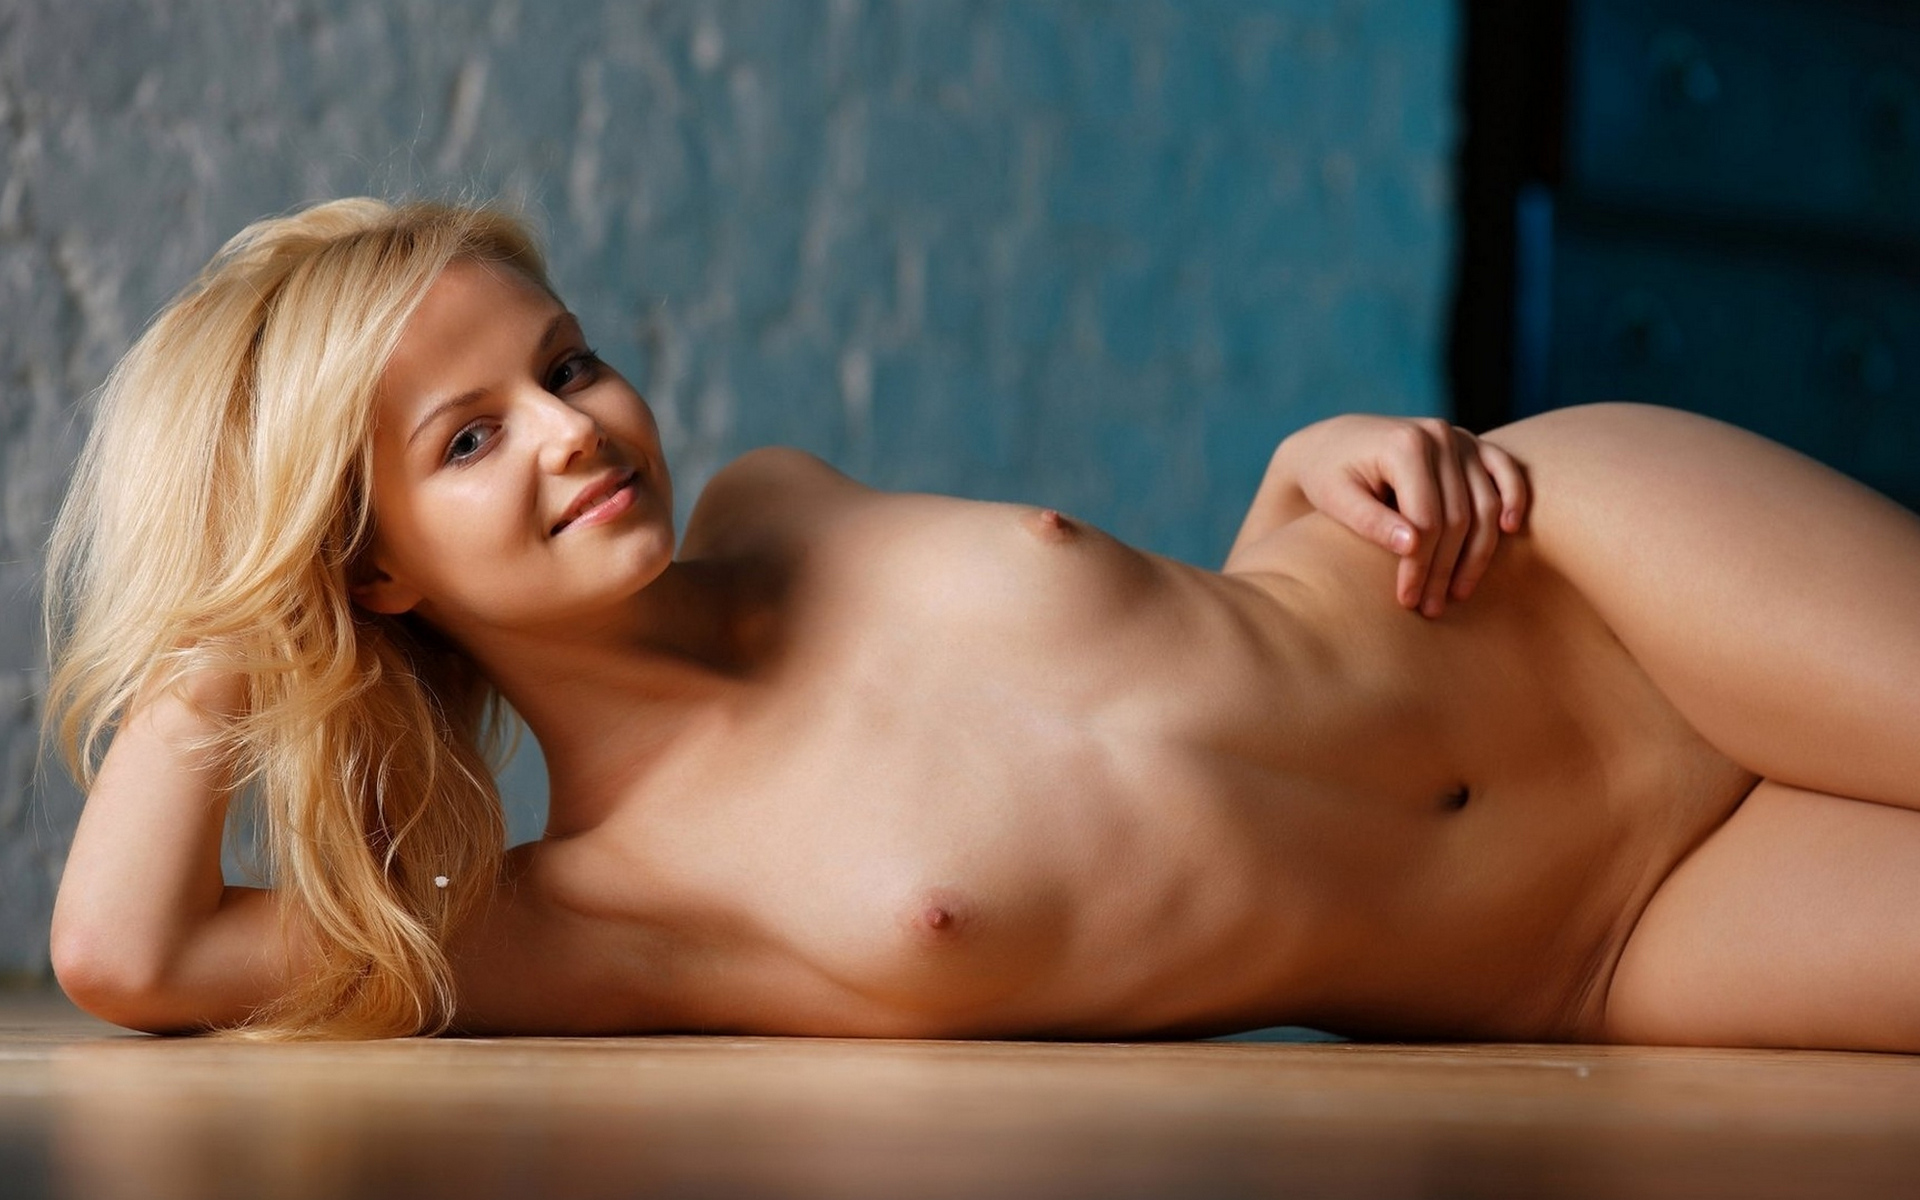 young-naked-models-galleries-mmf-bi-video